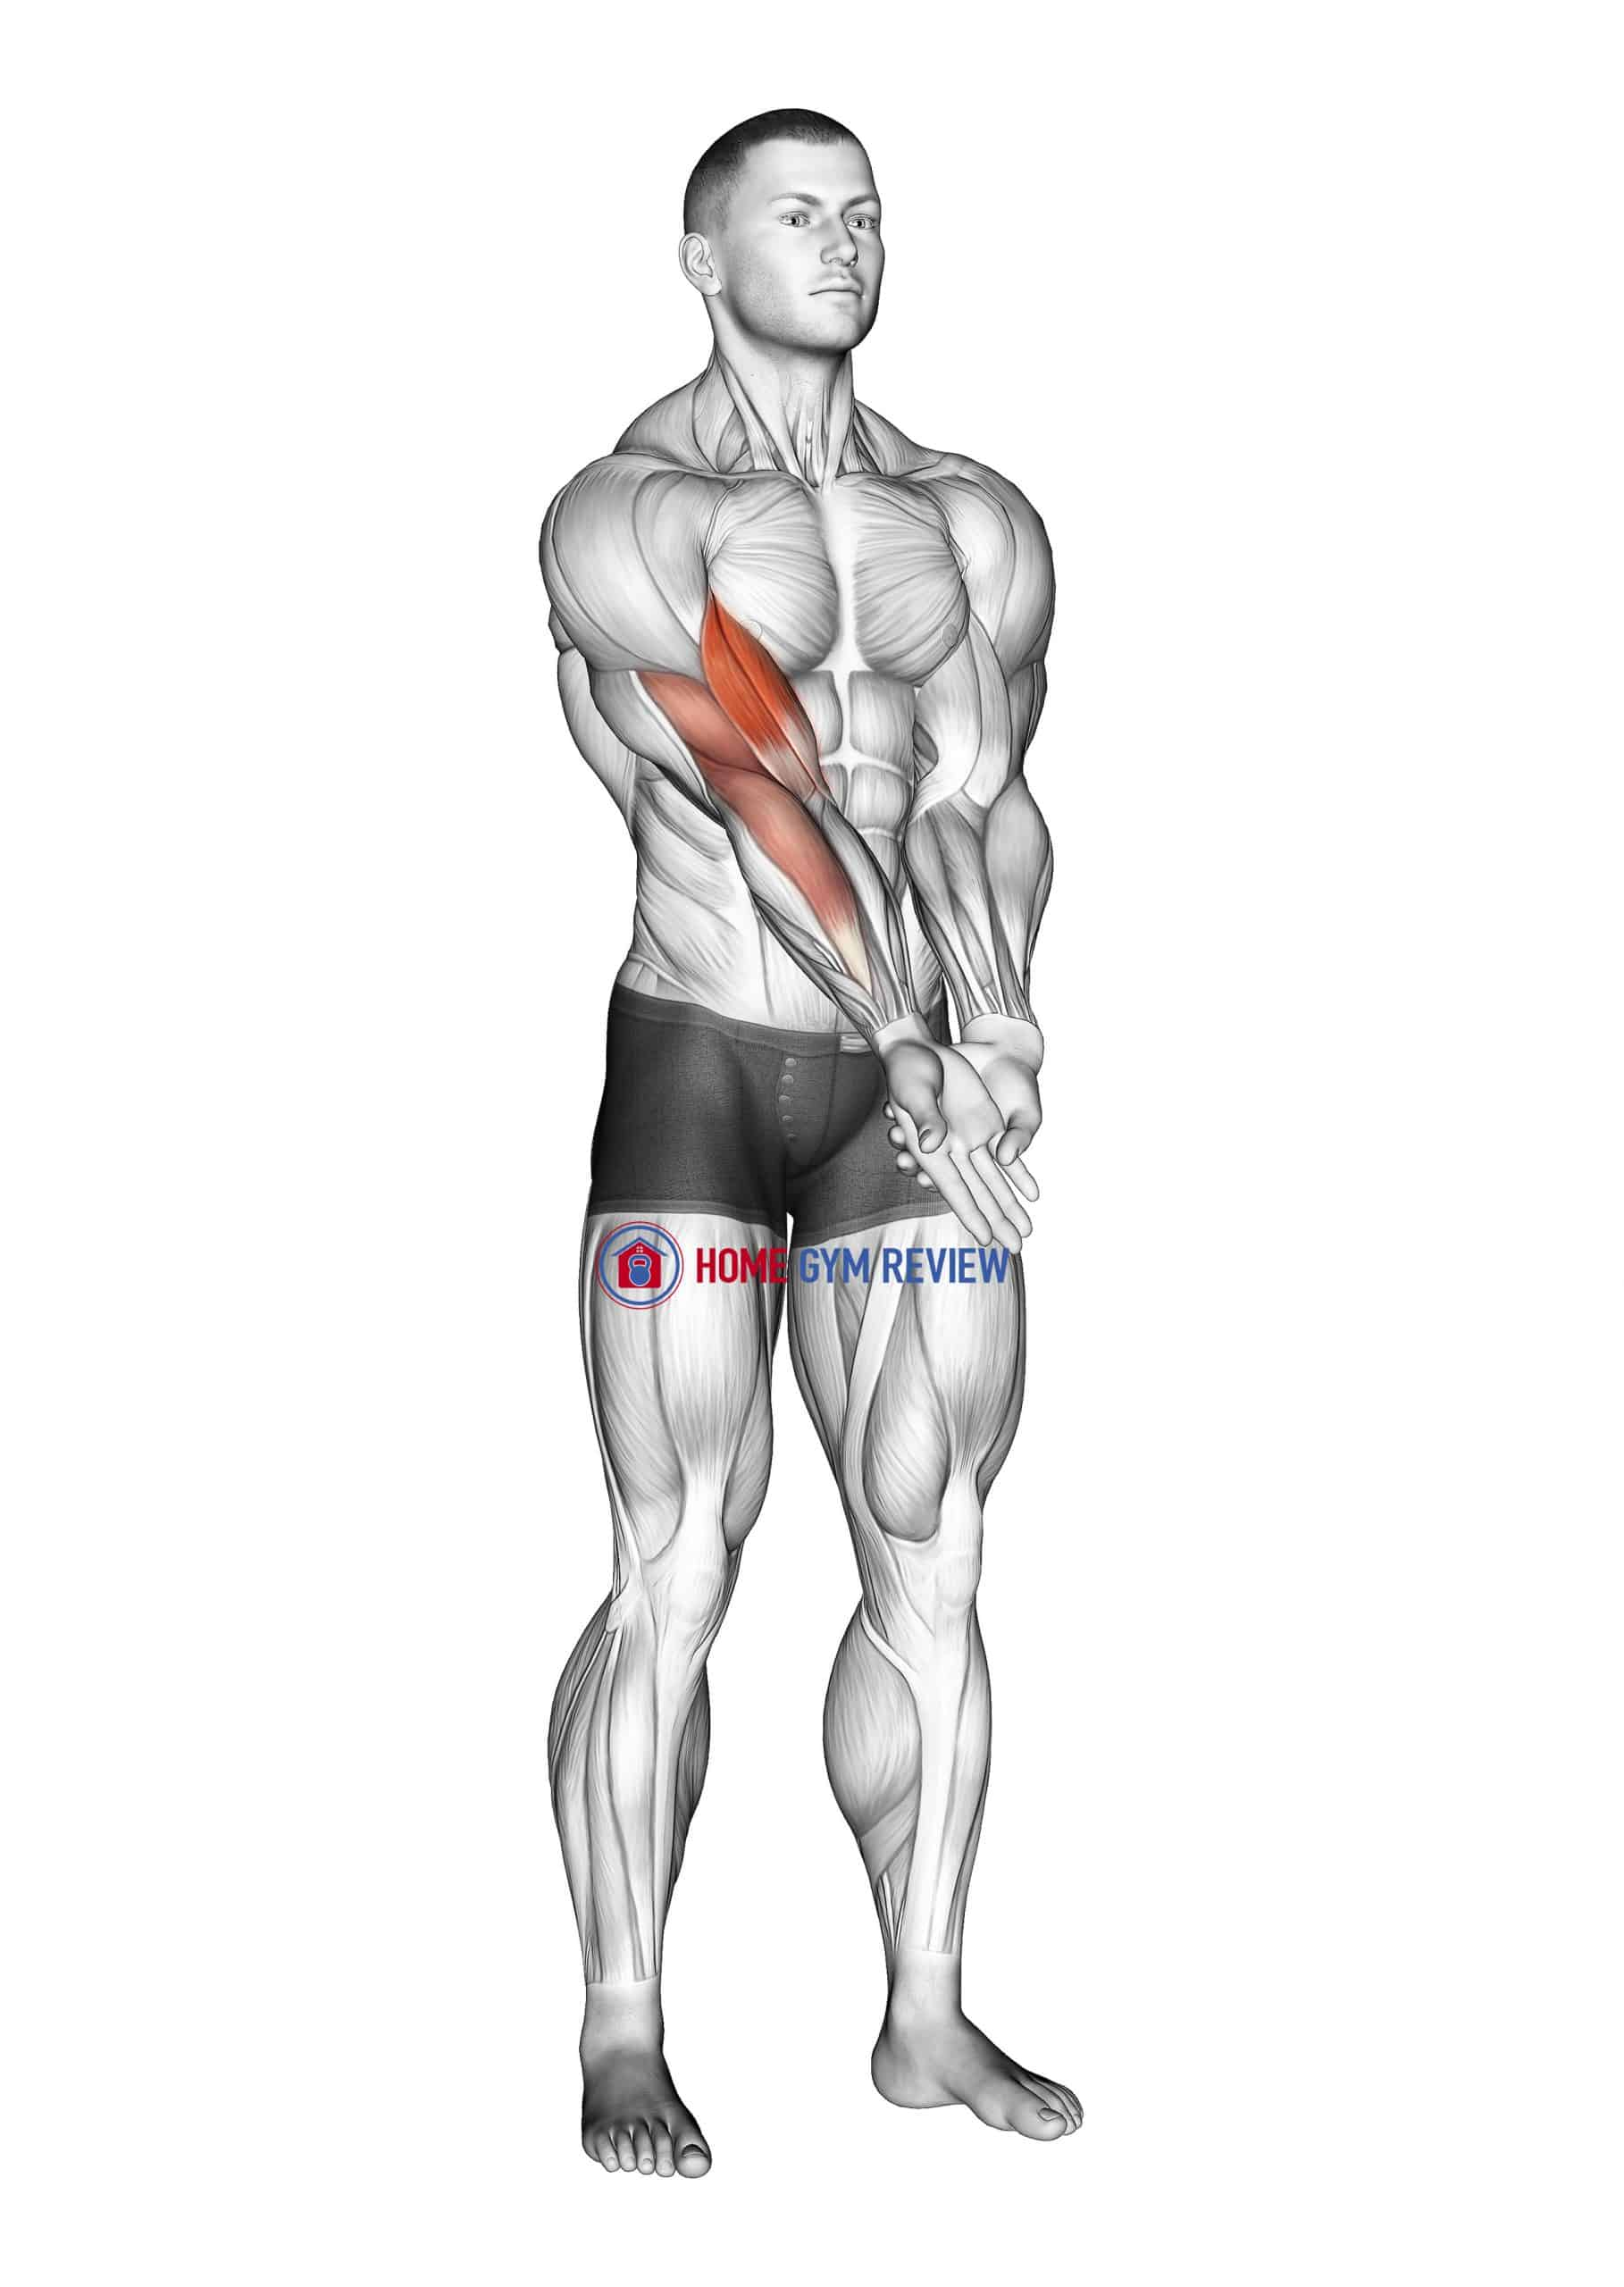 Elbow Extension And Supination - Pronation Forearm Stretch